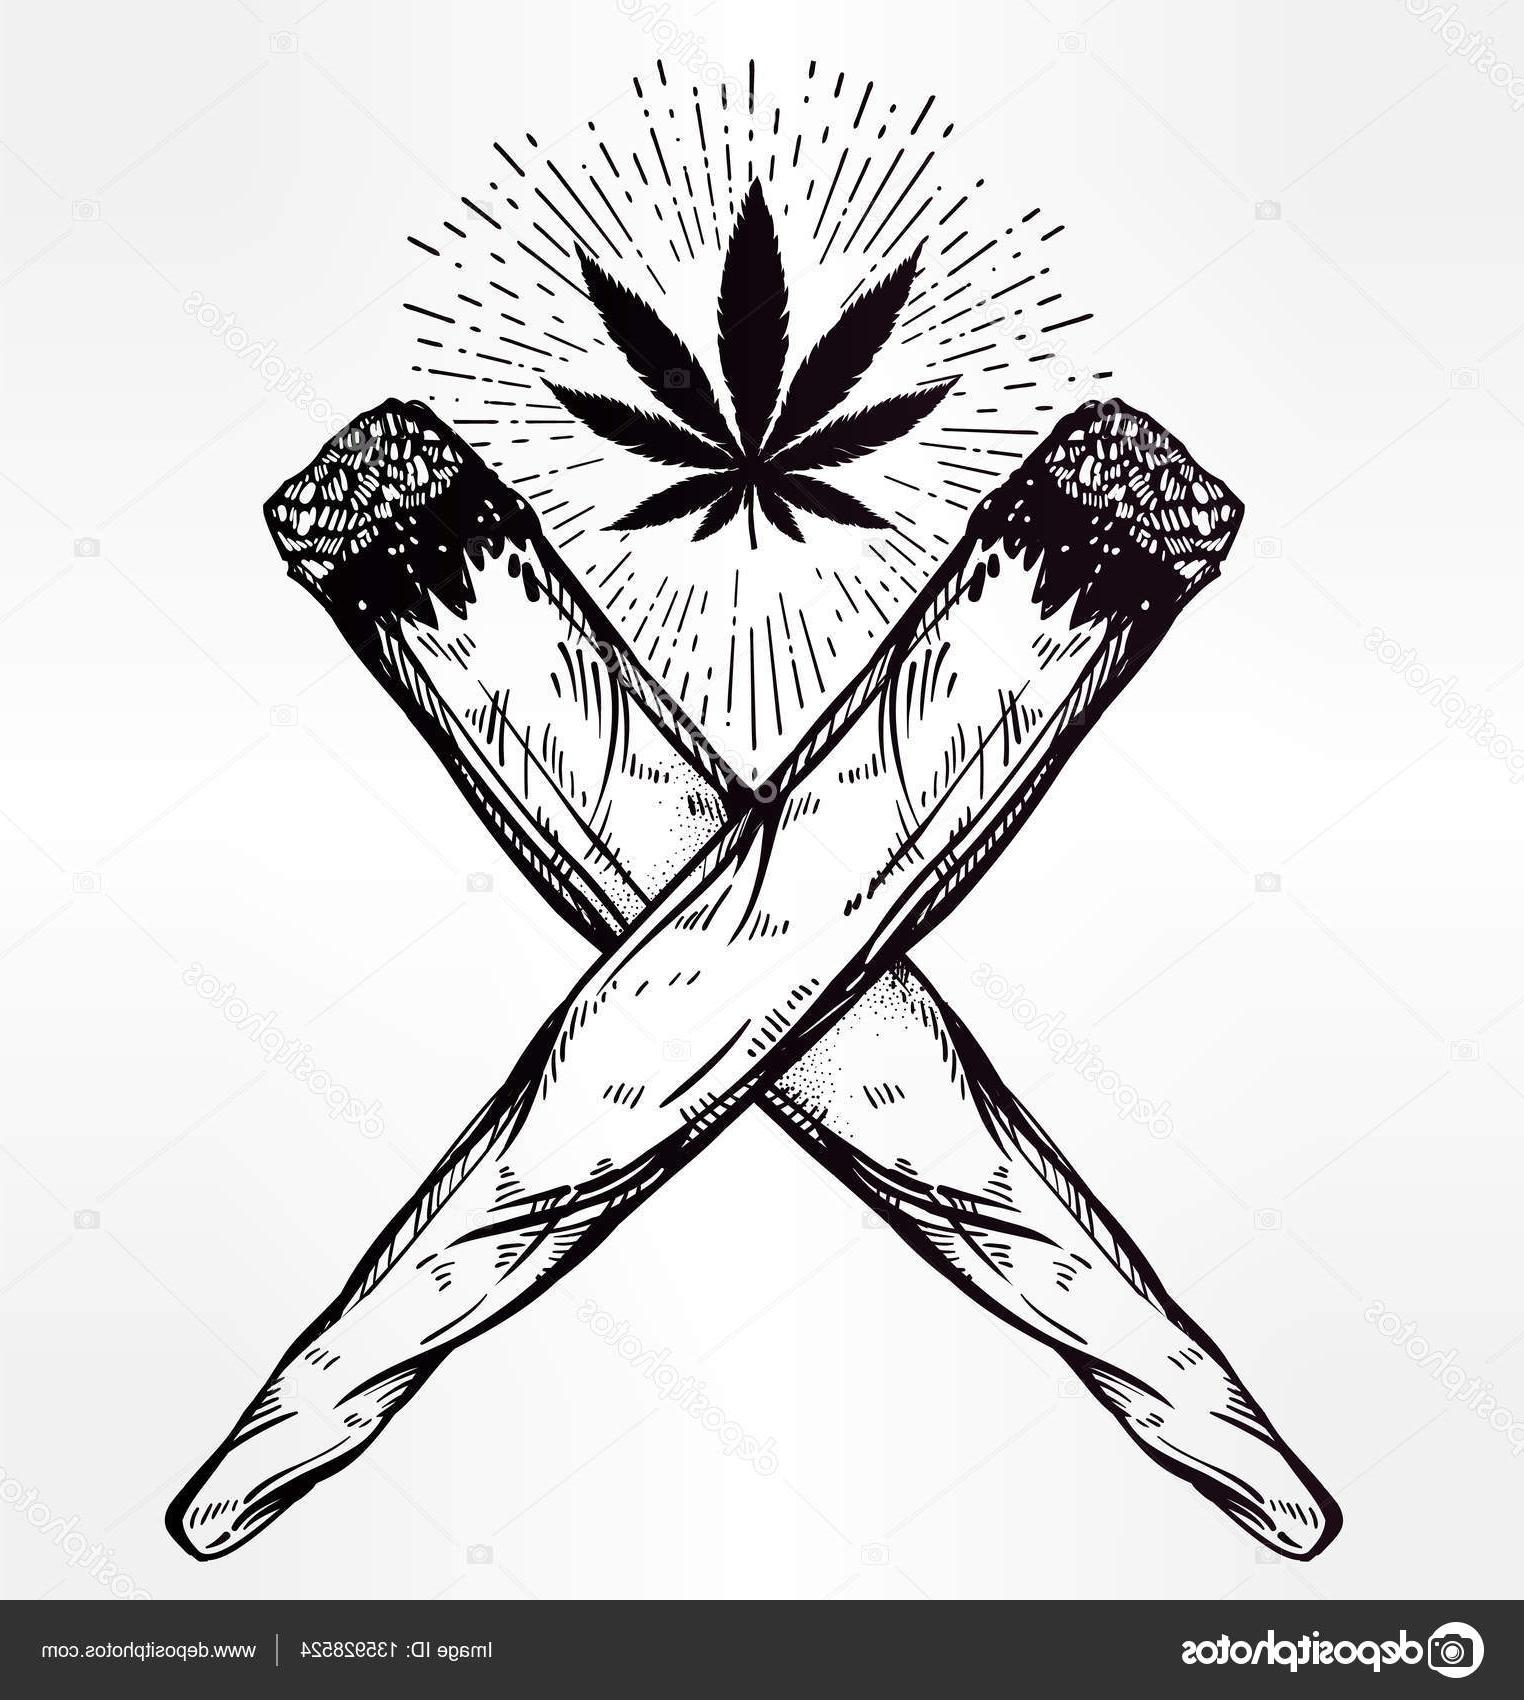 1524x1700 Best Hd Drawn Cannabis Spliff Images